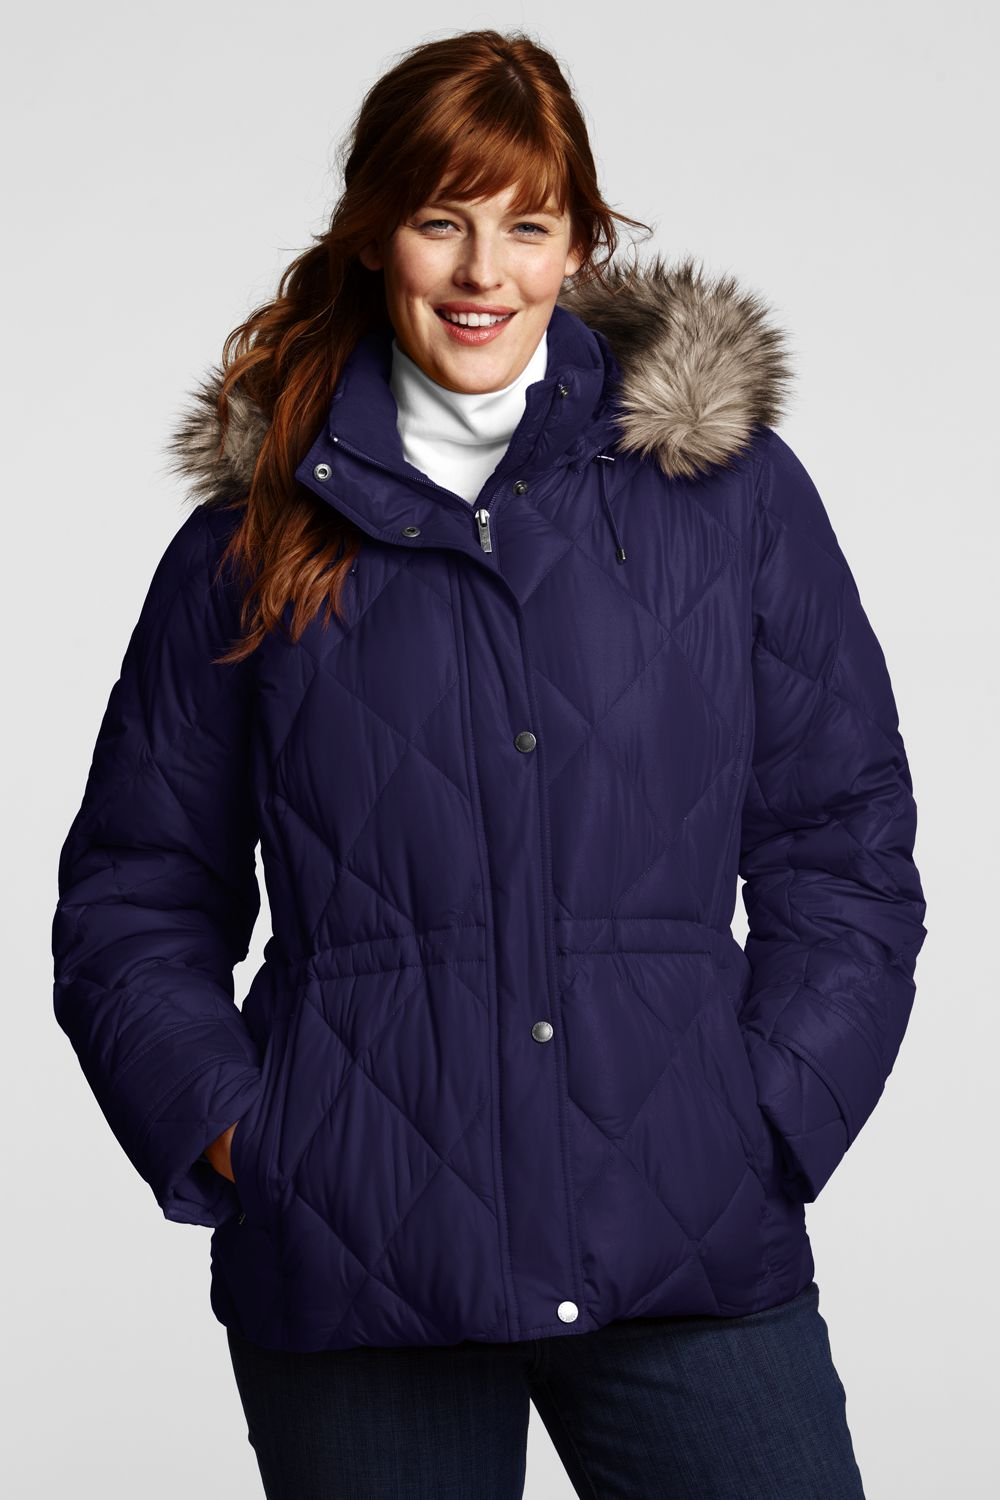 Coats & Jackets. Transition into fall and winter by discovering our stunning collection of women's plus sized coats and jackets.